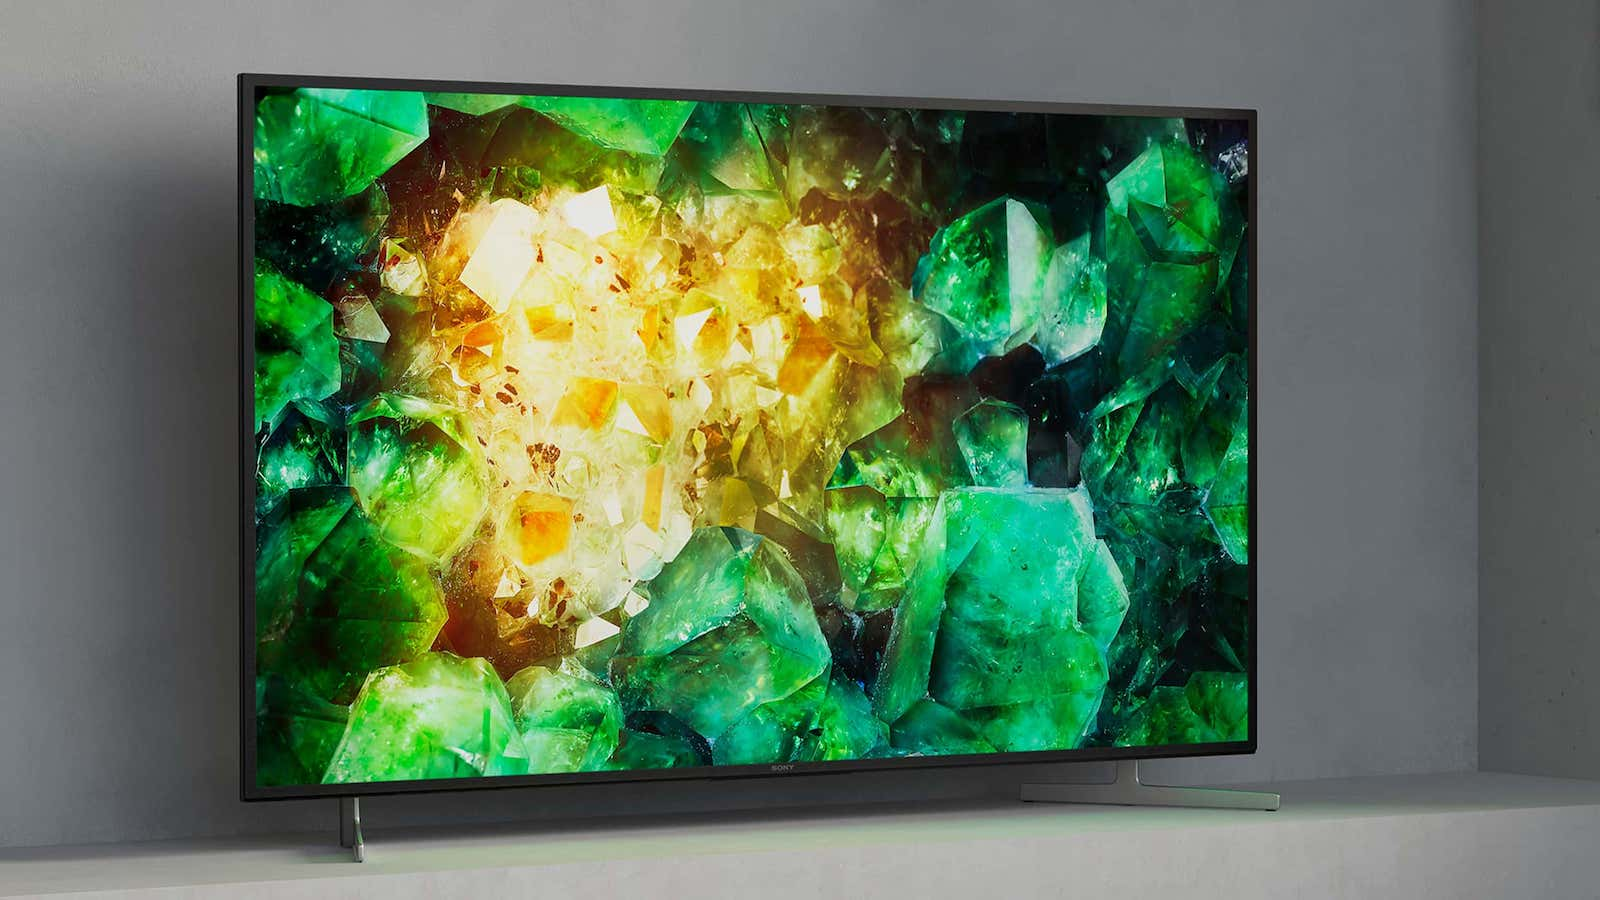 Sony XH81 4K TV